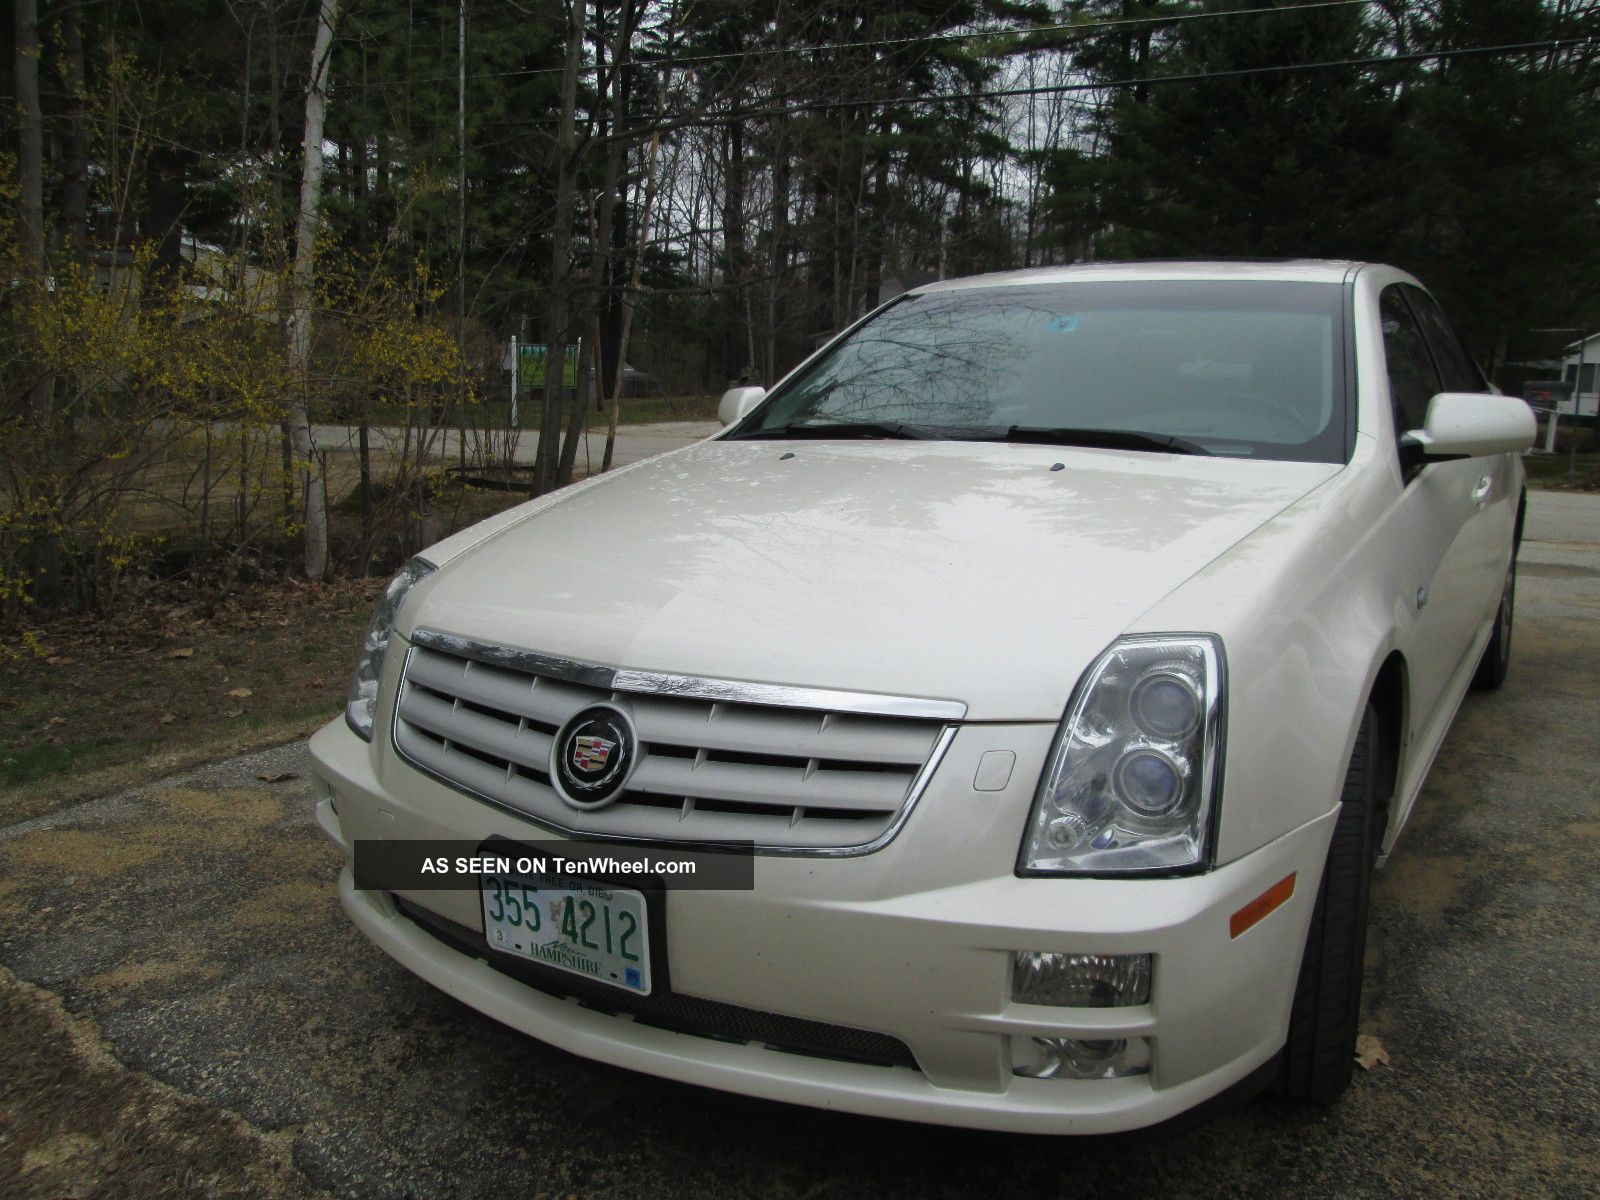 2007 Cadillac Sts V8 Northstar STS photo